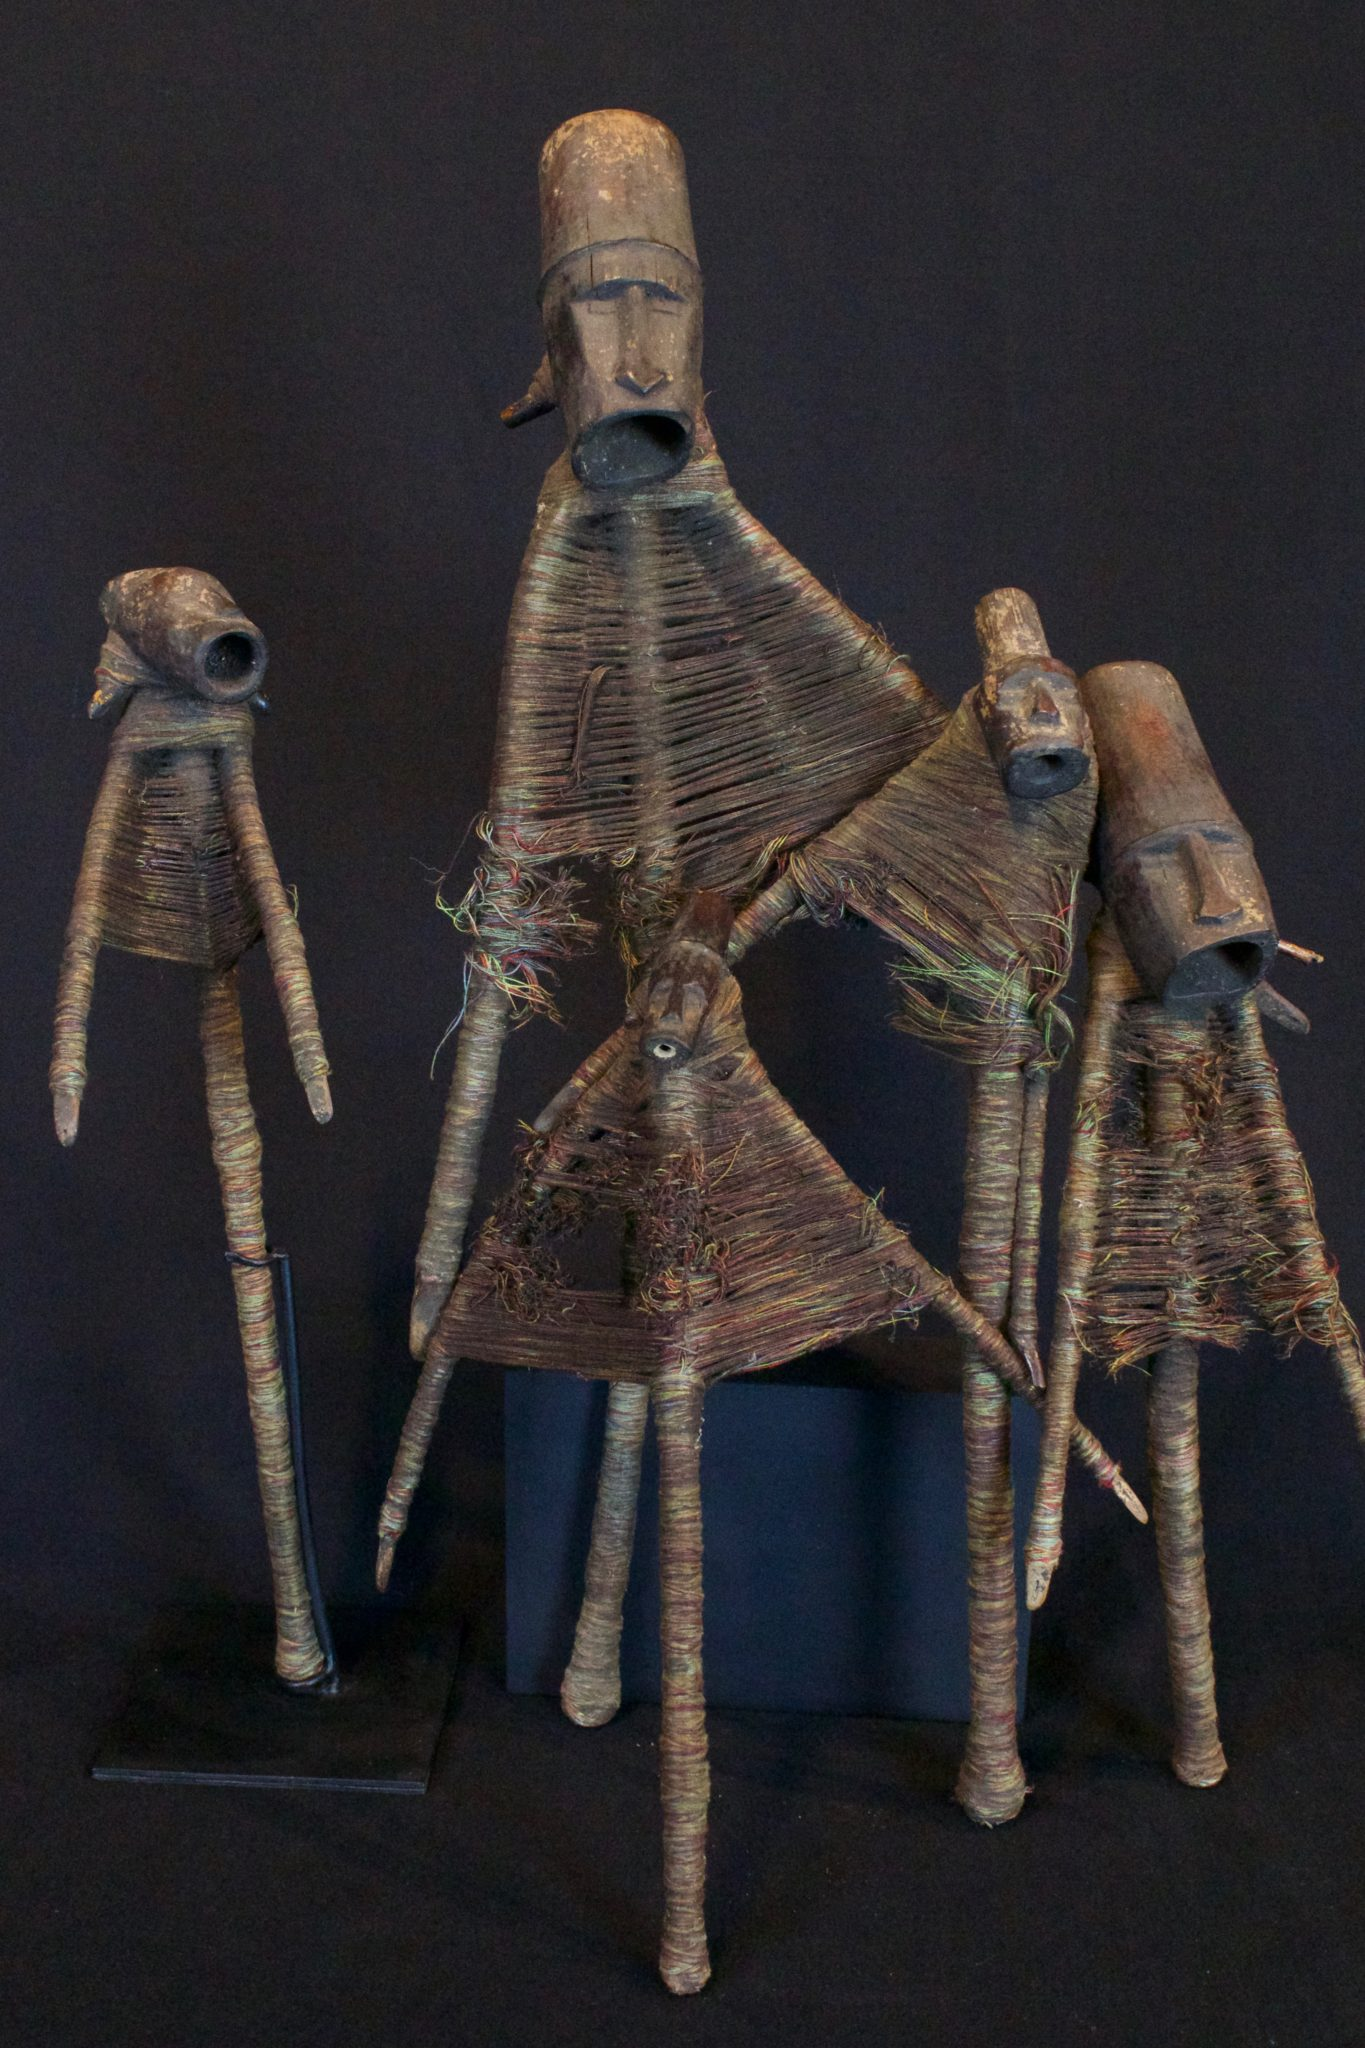 """Magic Protection Figures East Flores Island, Lesser Sunda Islands, Indonesia, Mid 20th c, Wood, bamboo, thread. Kept in household kitchen to protect the home. Dimensions: 10"""" to 17"""" tall; $135. to $225."""